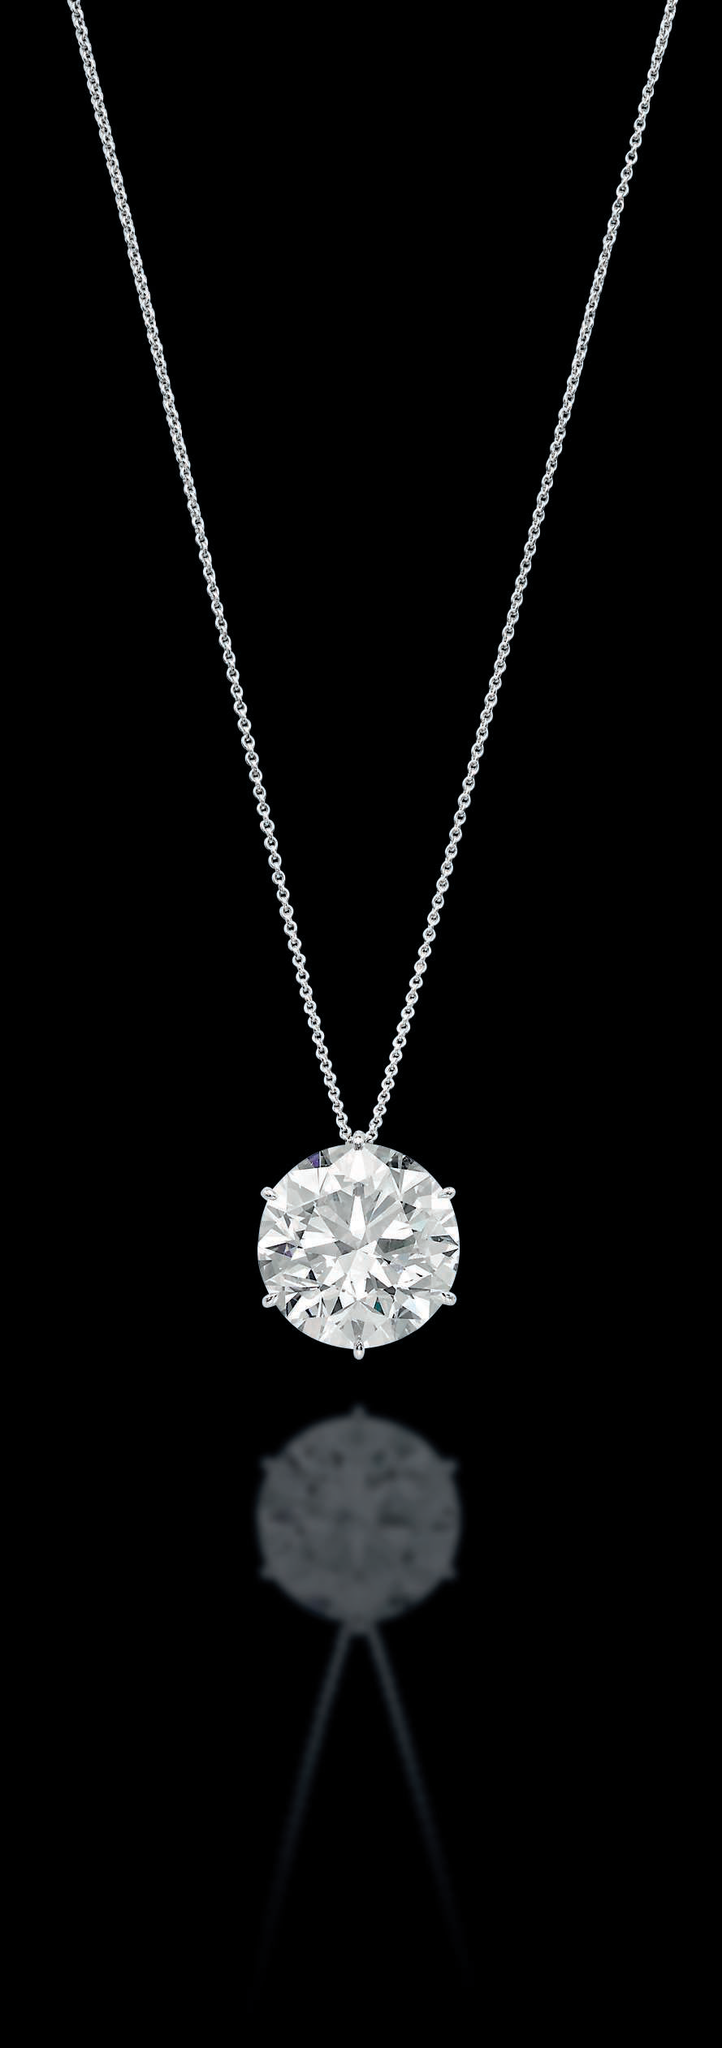 A spectacular diamond pendant